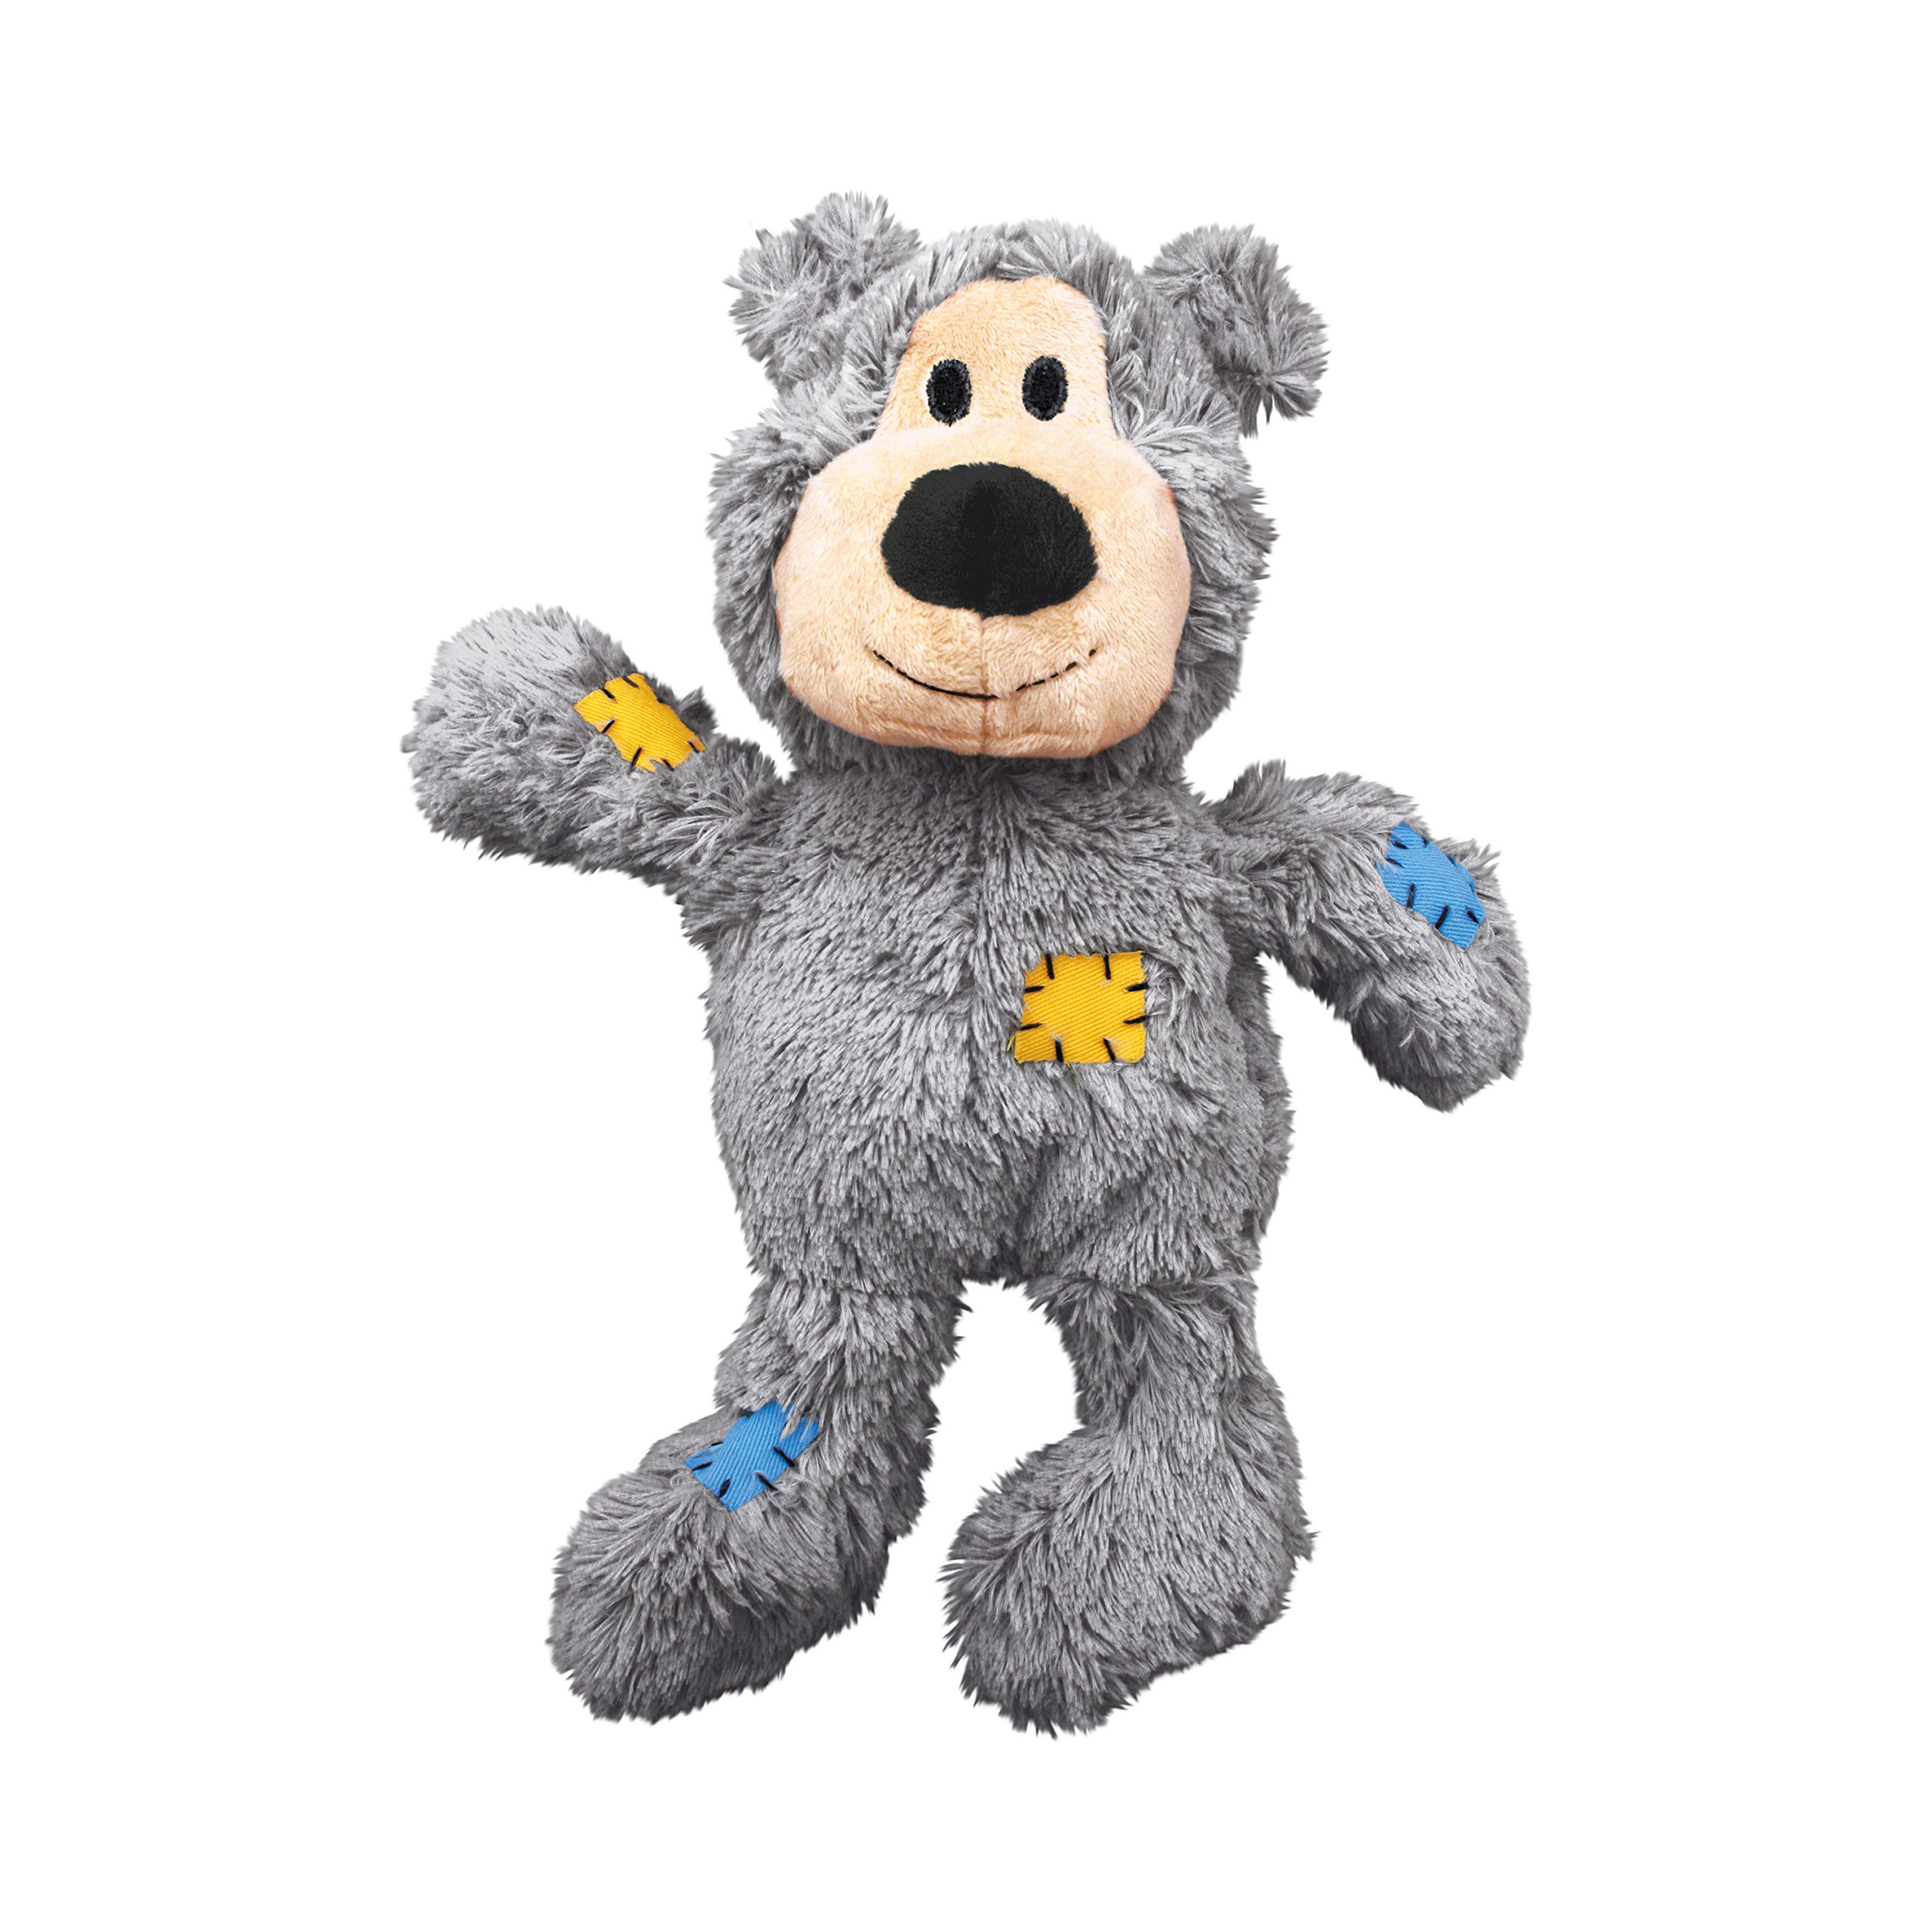 KONG Wild Knots Squeaker Bears for Dogs, Medium/Large, Colors Vary